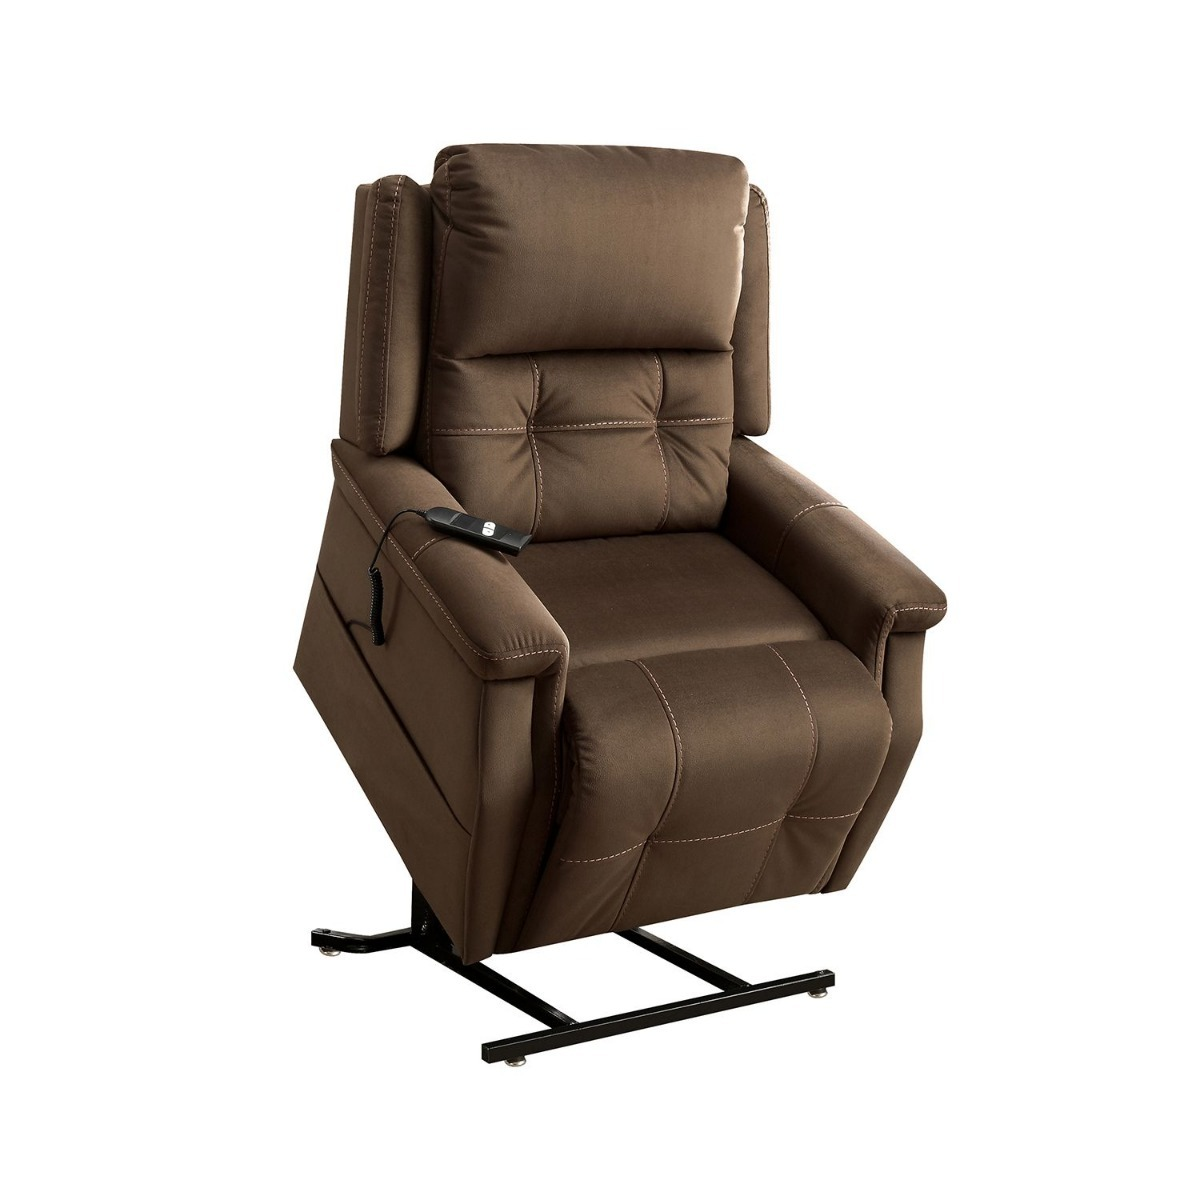 Sillon Reclinable Electrico Home Meridian Doble Motor